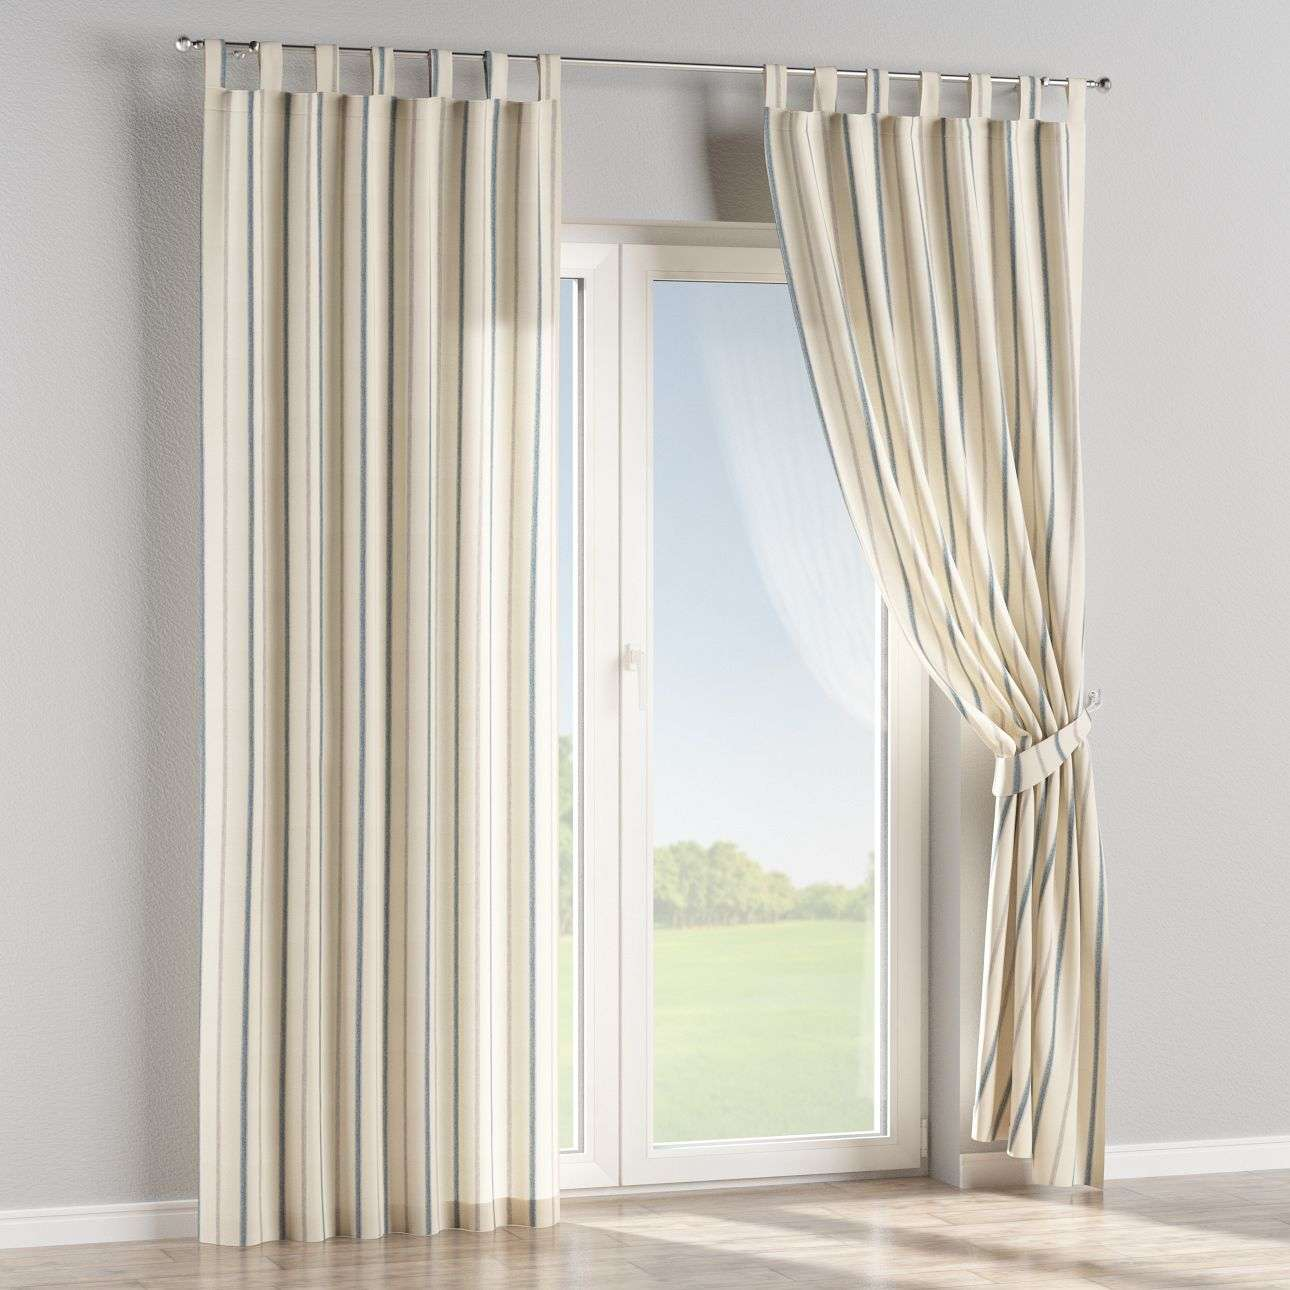 Tab top curtains in collection Avinon, fabric: 129-66